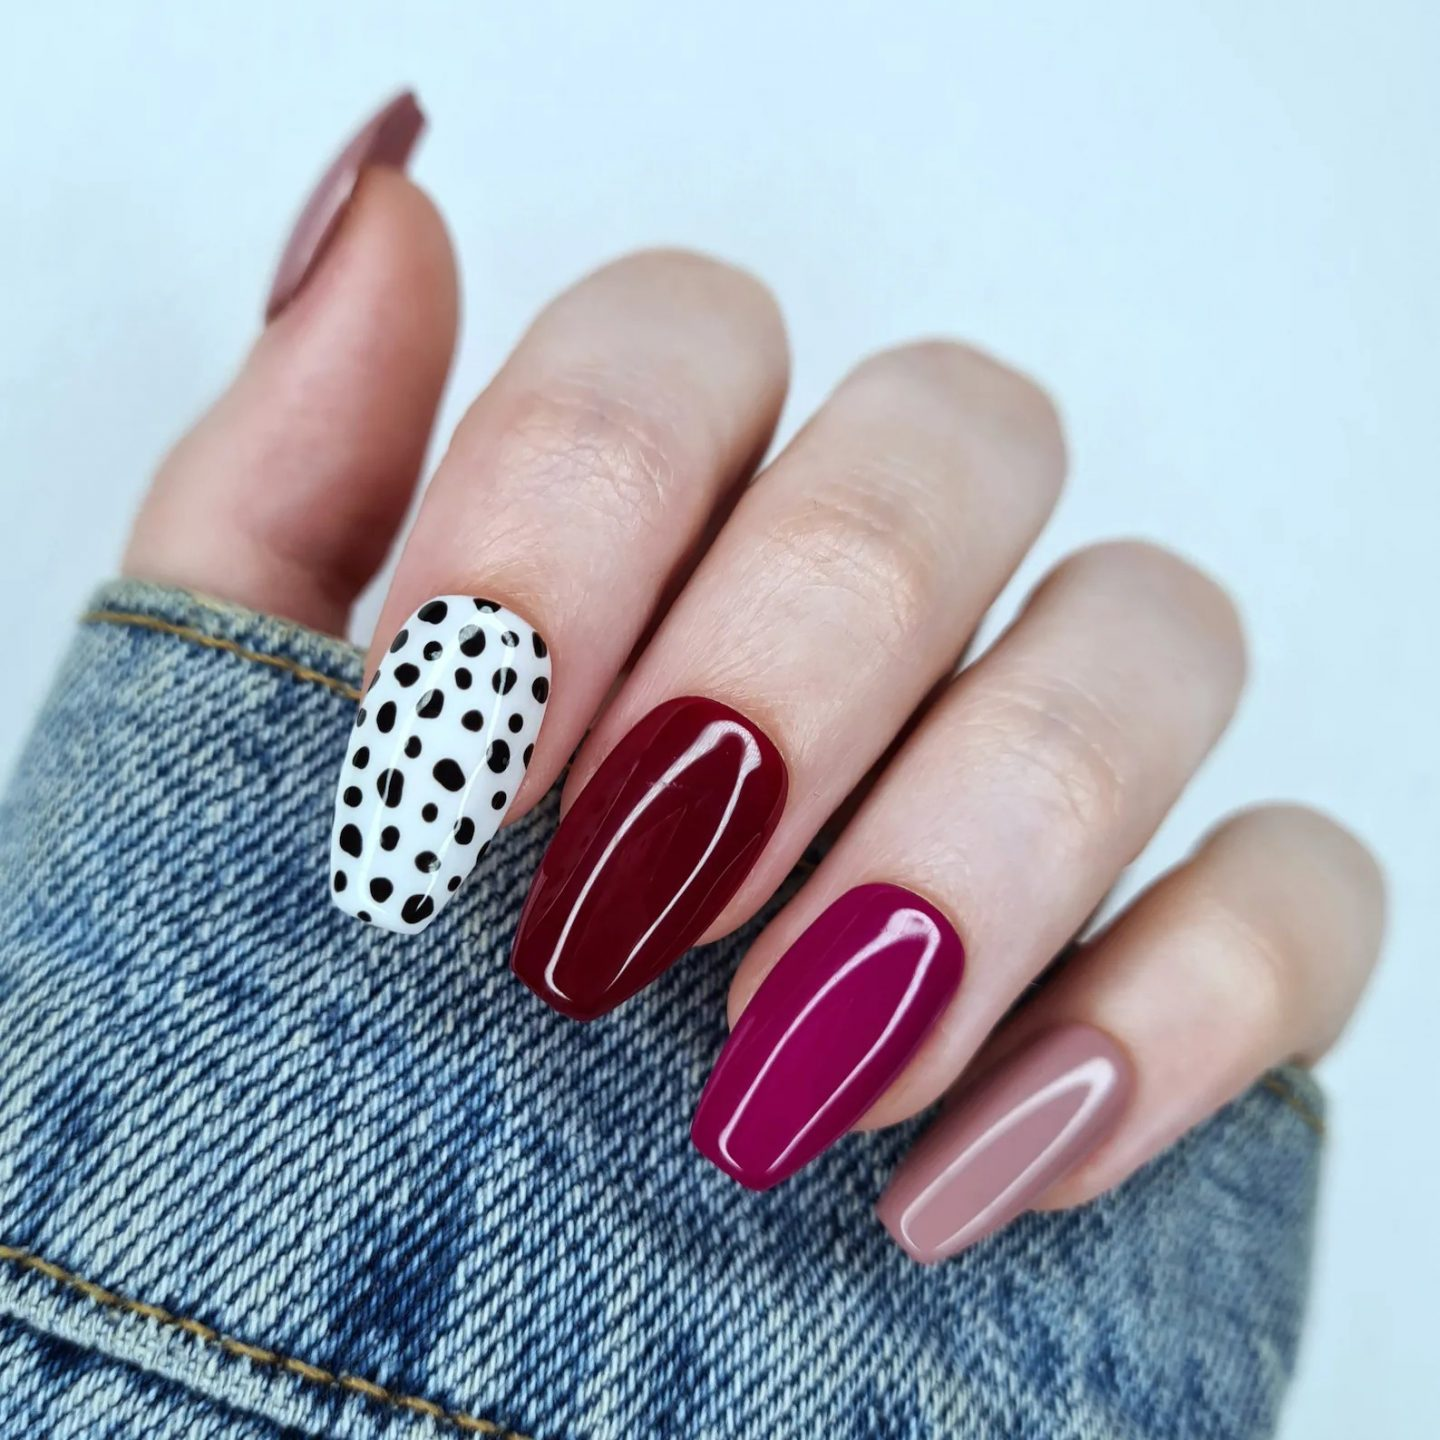 Ombre burgundy and maroon nails with black and white polka dots